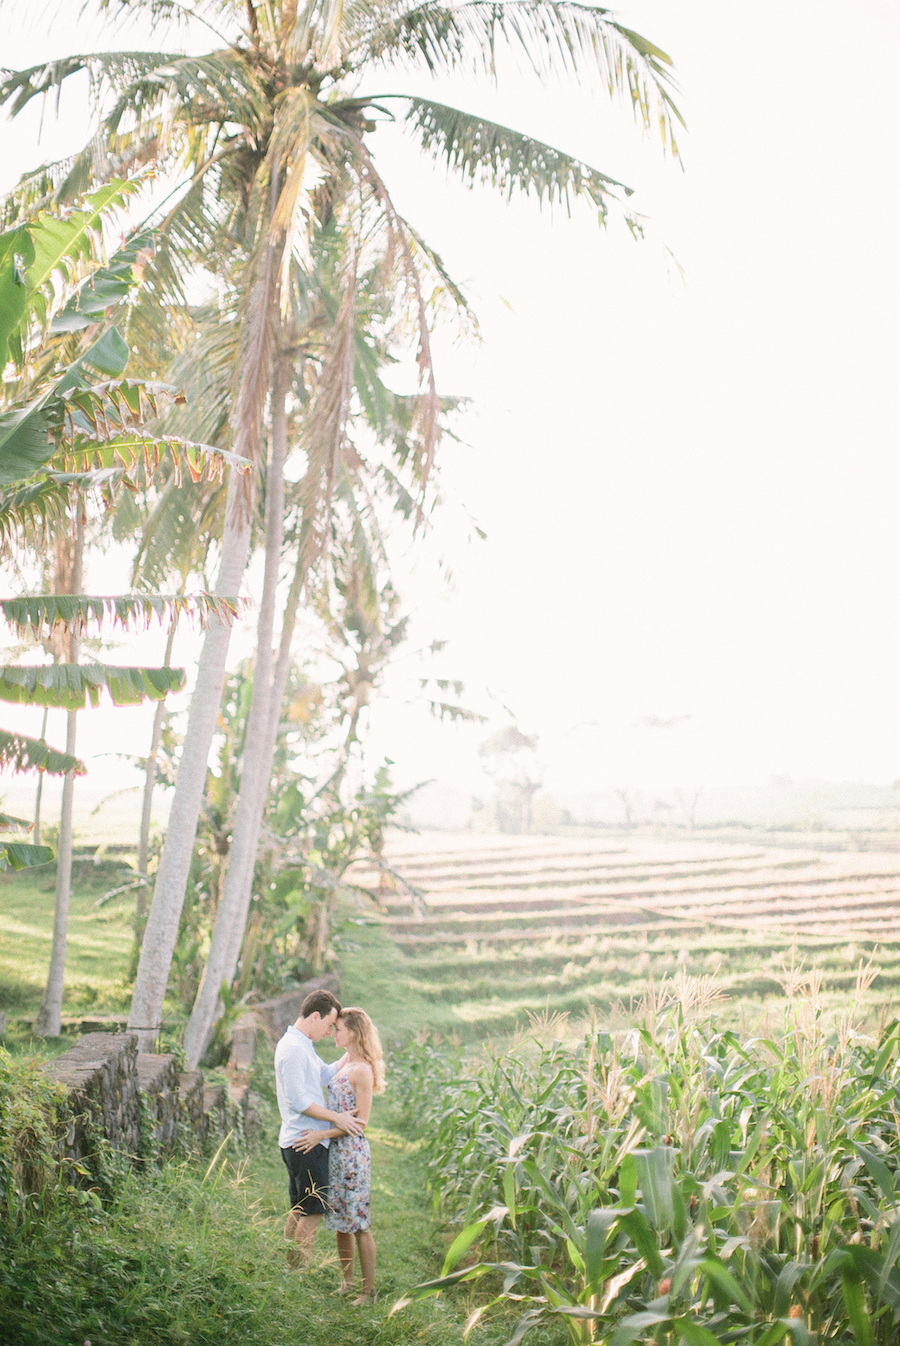 saya-photography-pre-wedding-engagement-bali-canggu-55.jpg